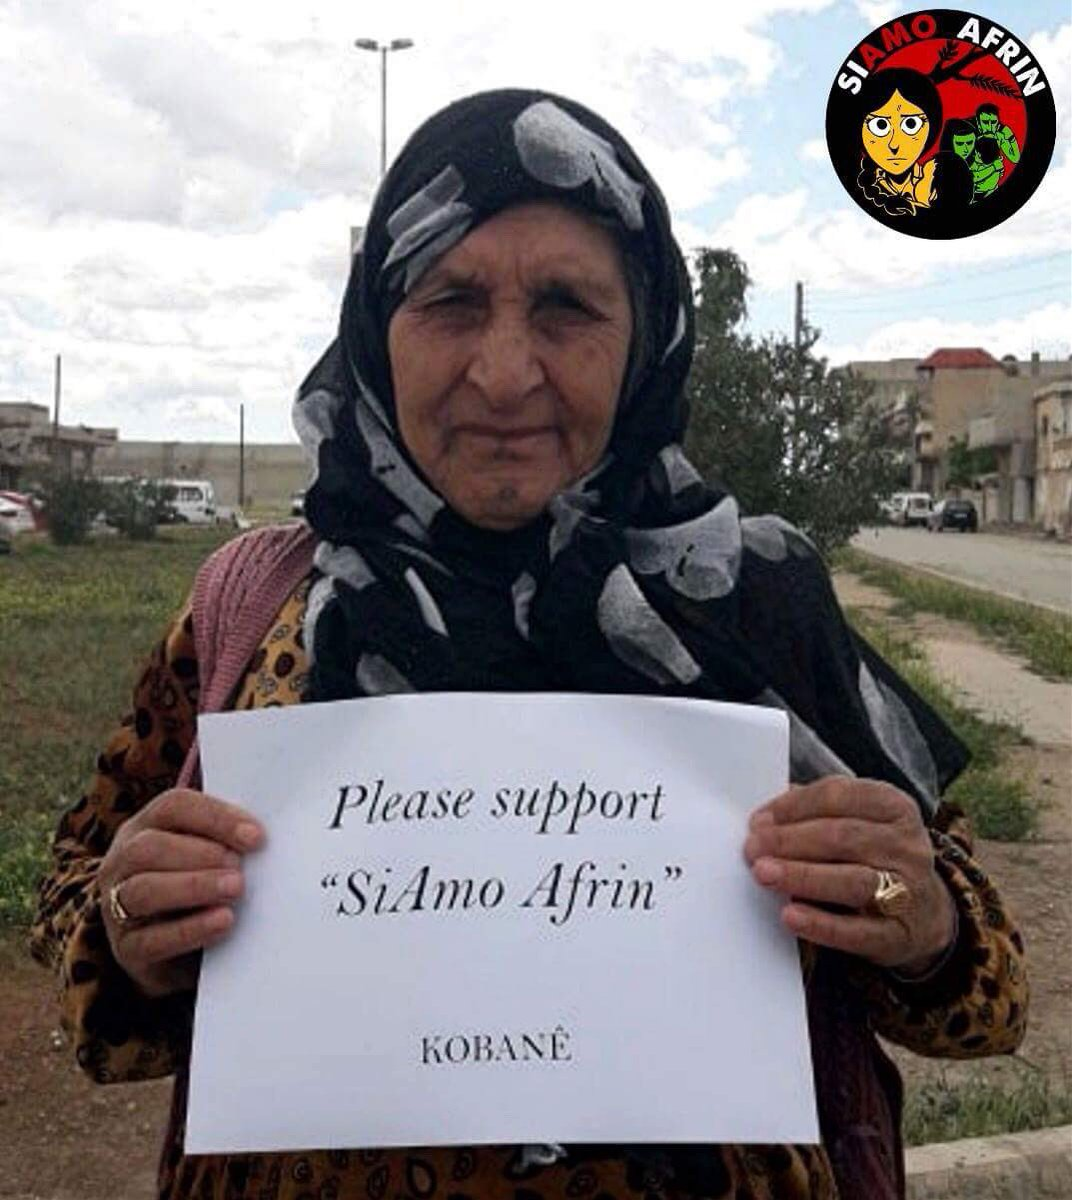 Support #SiAmoAfrin as the people of #Kobane hope. Please donate as thousands of people urgently need help. Every donation makes a difference! Donate:  https://www. retedeldono.it/it/progetti/gu s/siamoafrin &nbsp; …  #TwitterKurds #Afrin #Rojava #Syria #Kurds #Yazidi #BreakSilenceOnAfrin #AfrinNotAlone #AfrinResistance<br>http://pic.twitter.com/8c4vzMGGY0